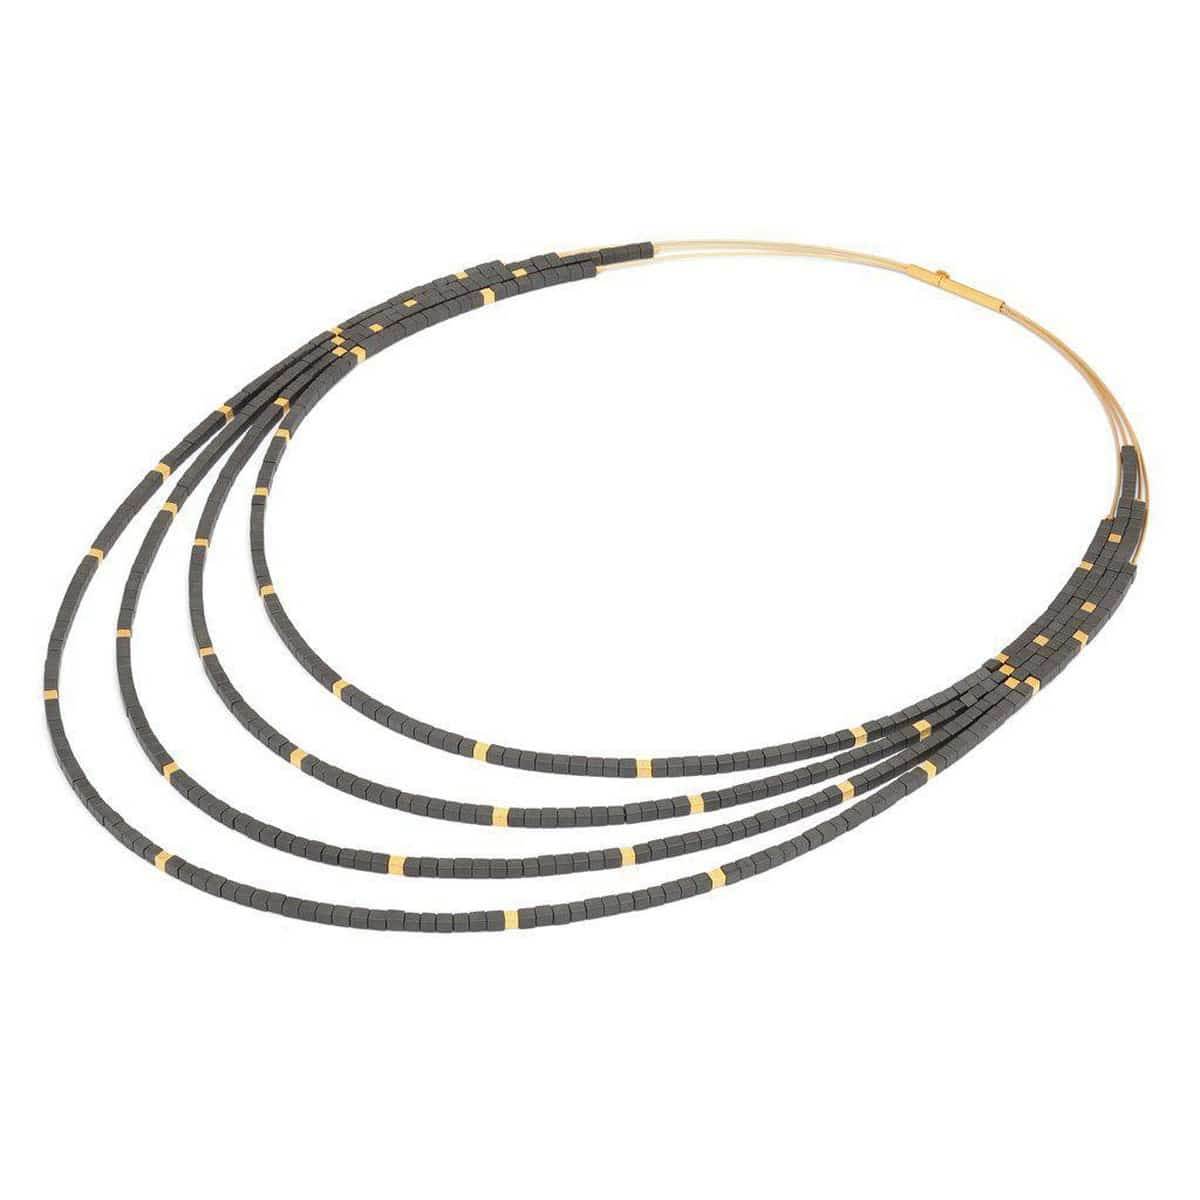 Cubalena Hematite Necklace - 83201276